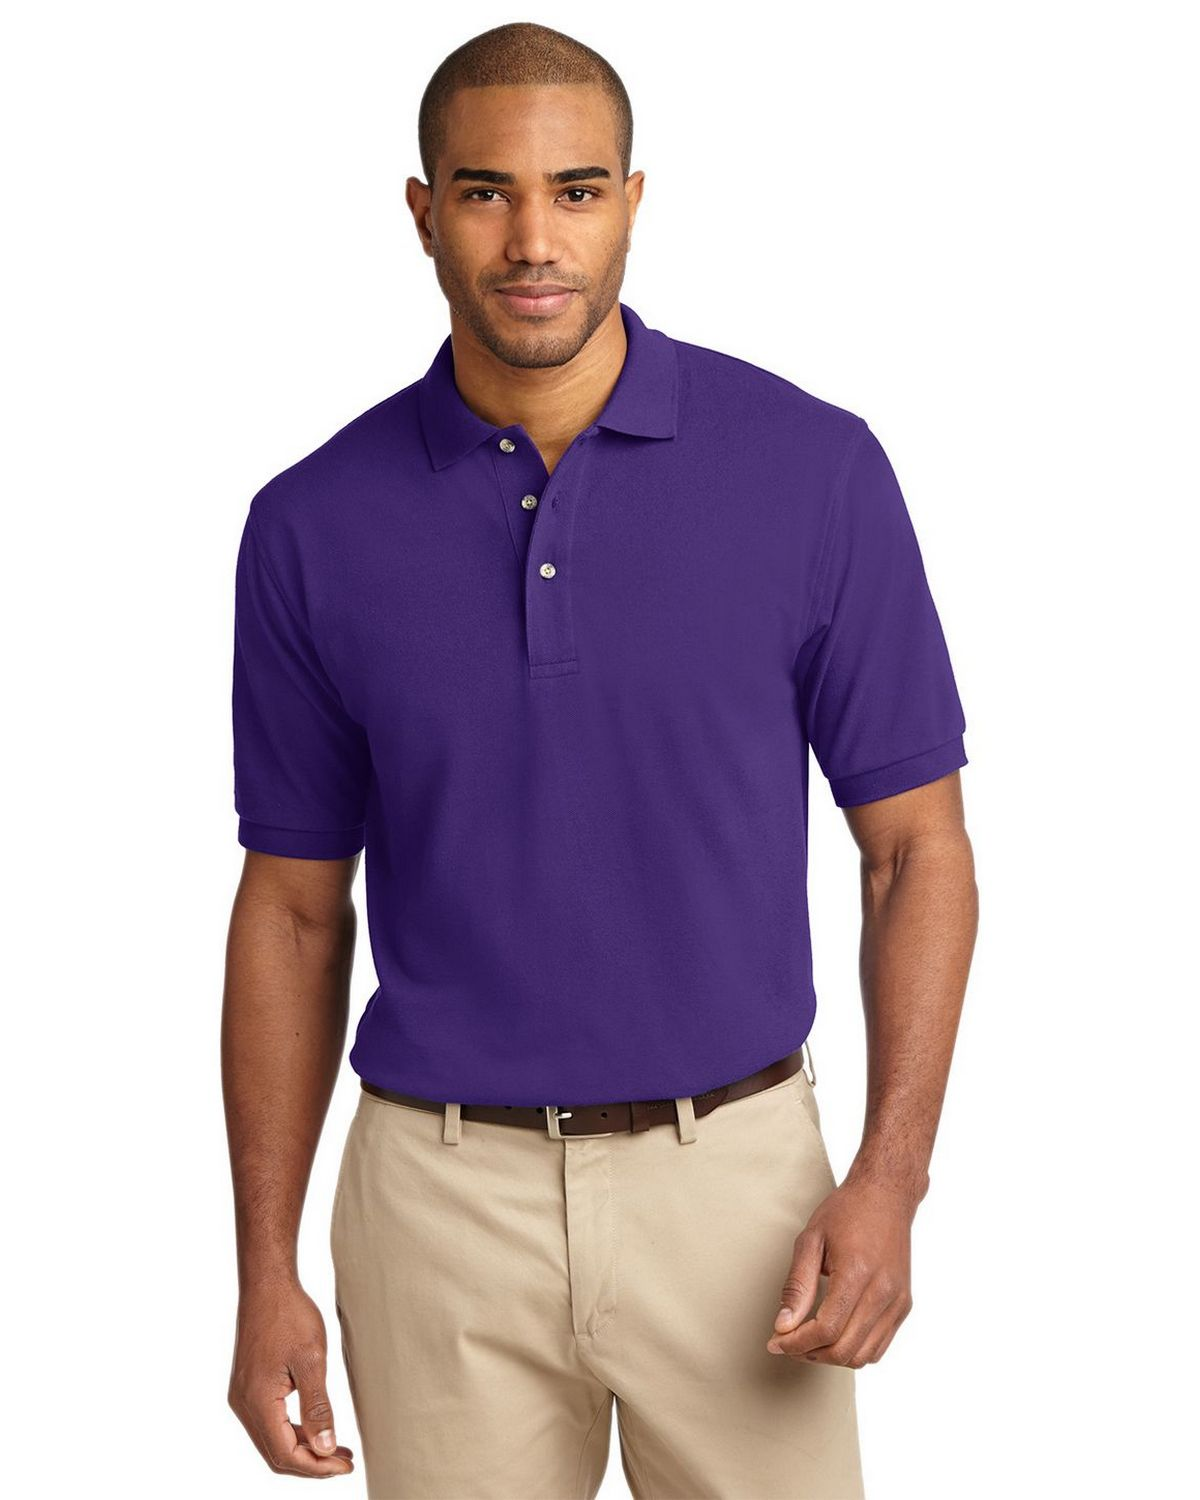 Port Authority K420 Pique Knit Polo - Purple - XS